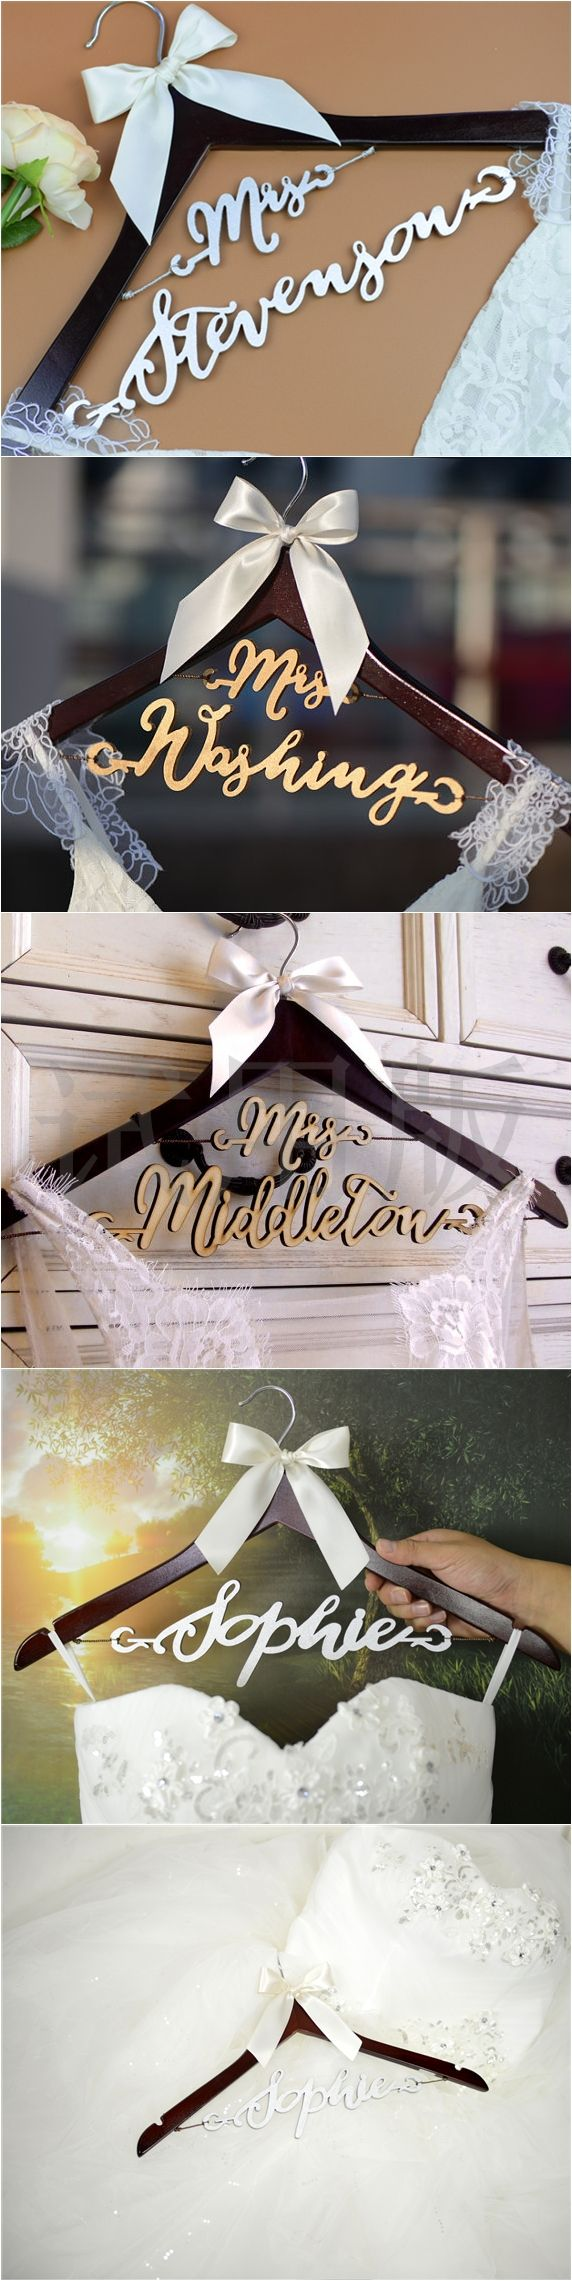 Personalized wedding hanger with bride name in bold and calligraphy font is a must have item for the bride to hang the dress for a photo before slipping it on. You gonna love it to be a perfect wedding shower gift.